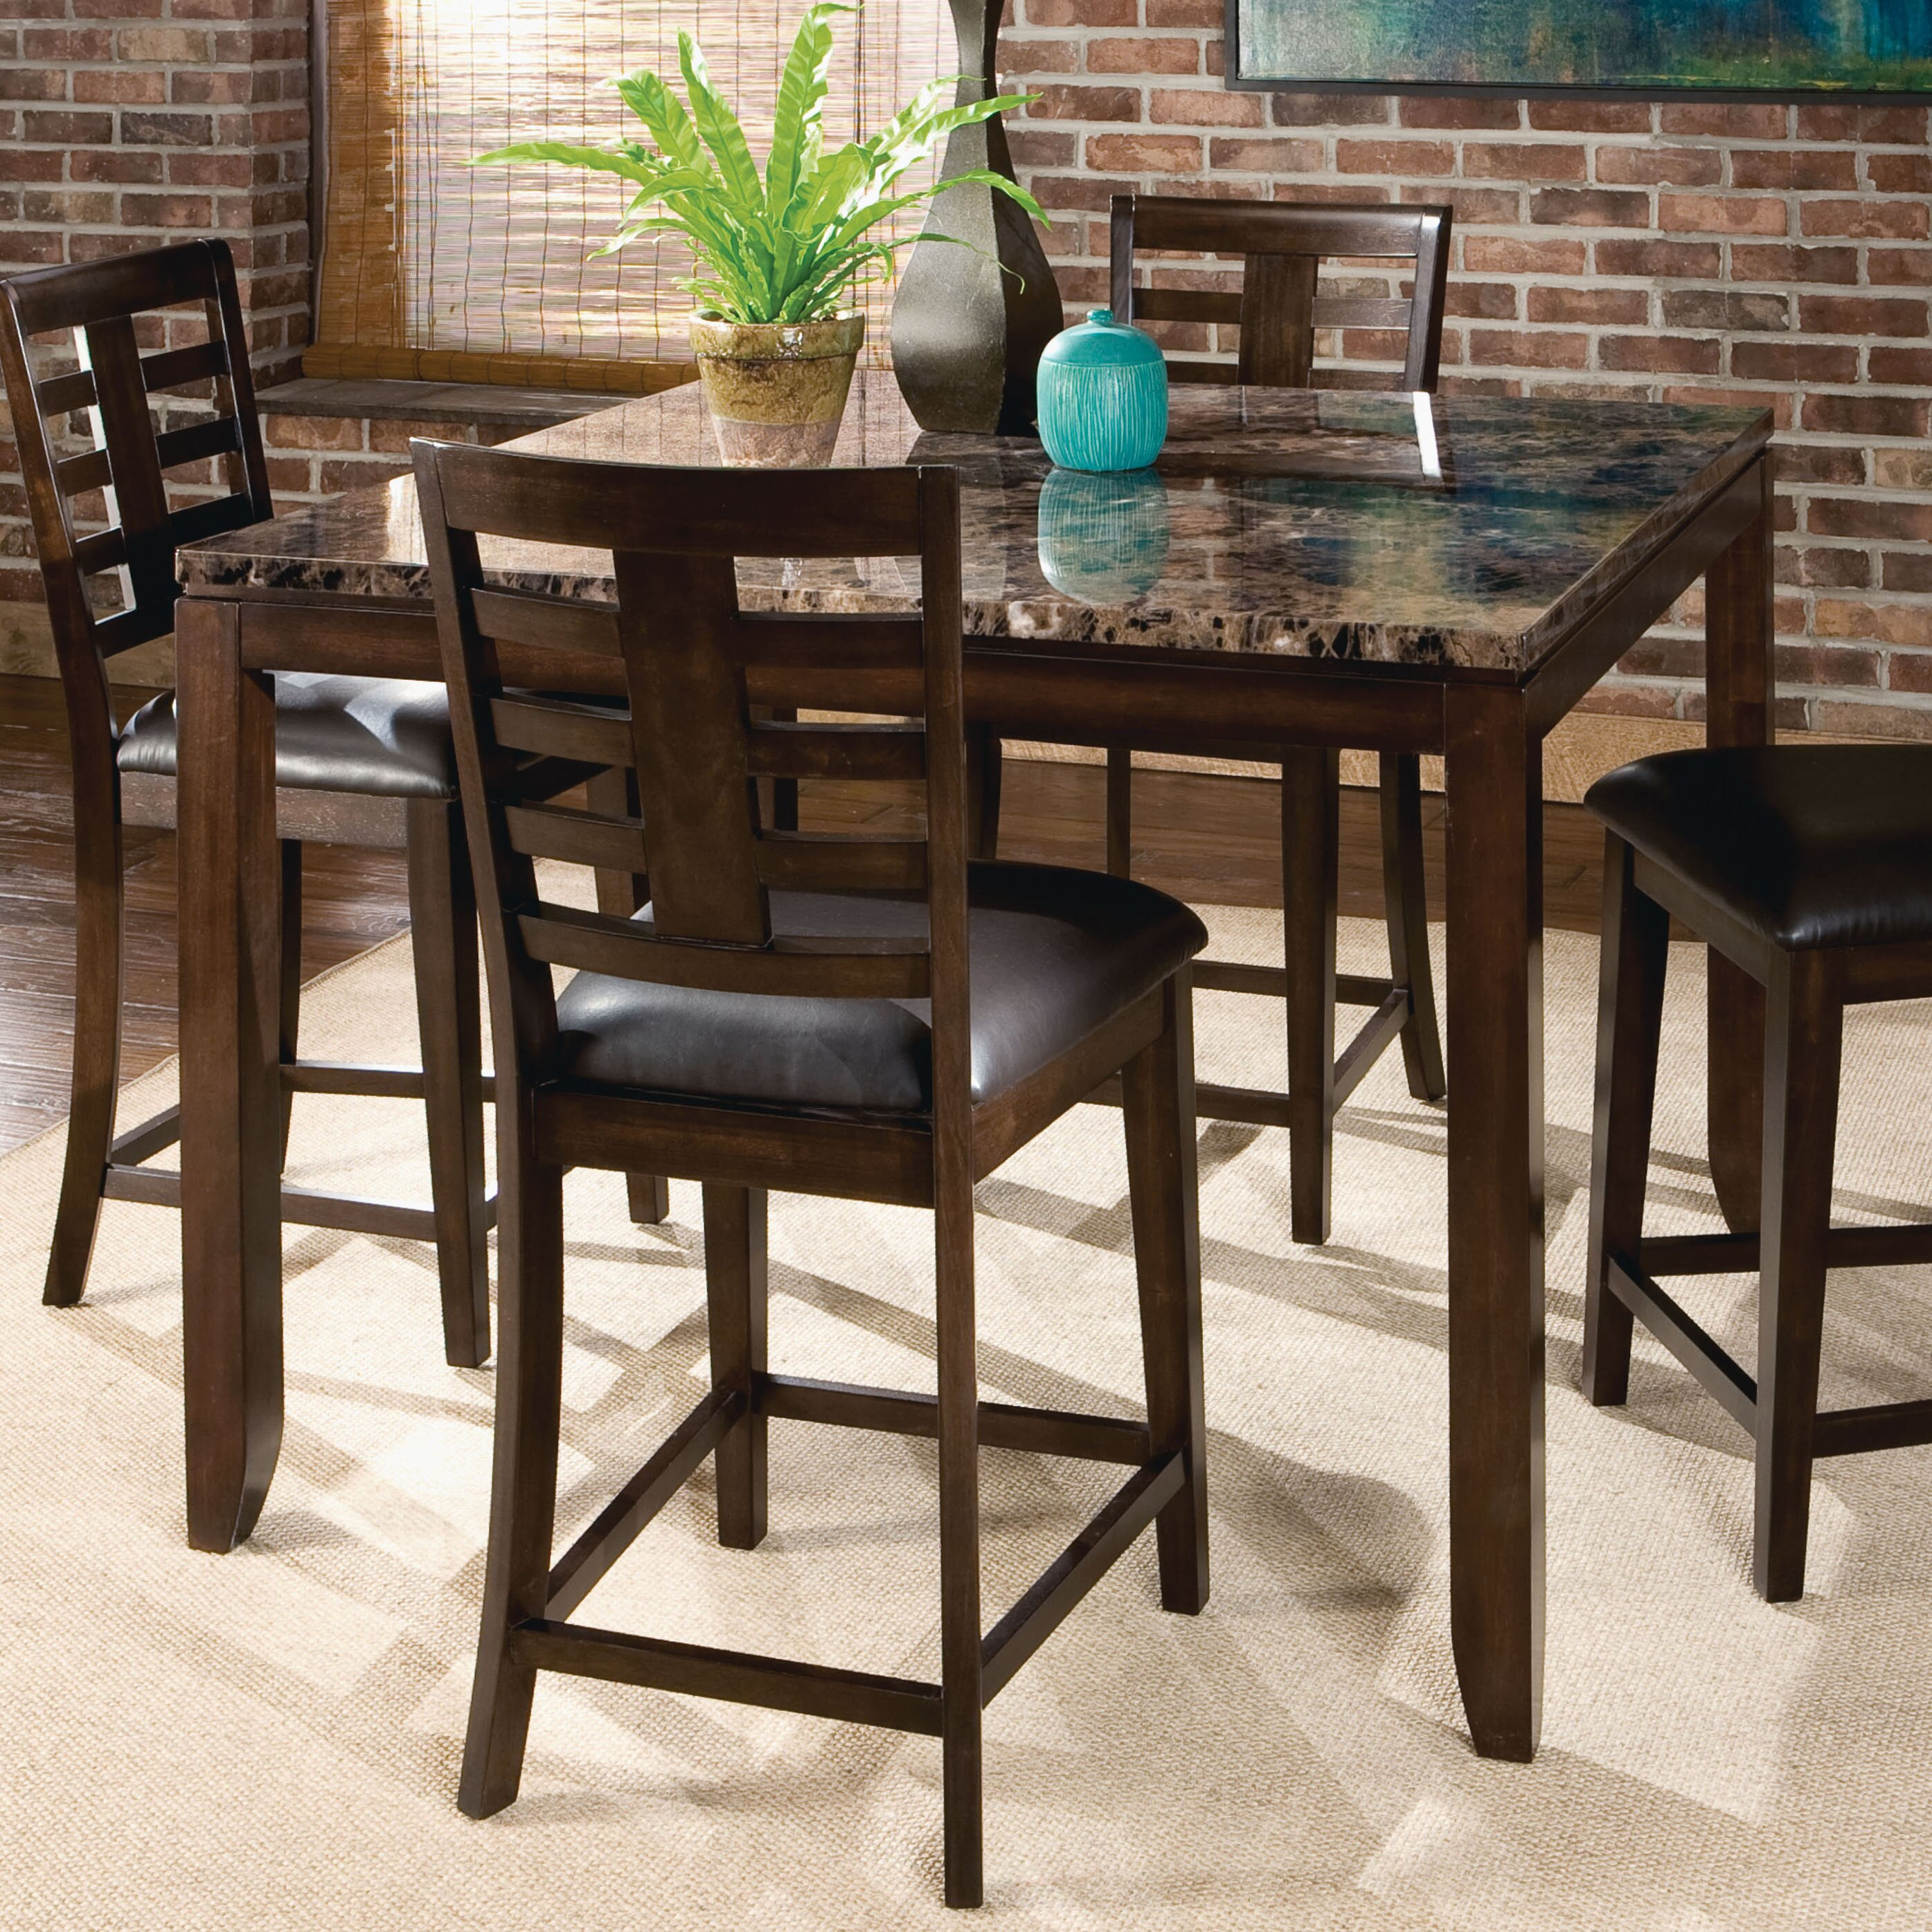 Average Dining Room Table Height: Standard Furniture Bella Counter Height Dining Table